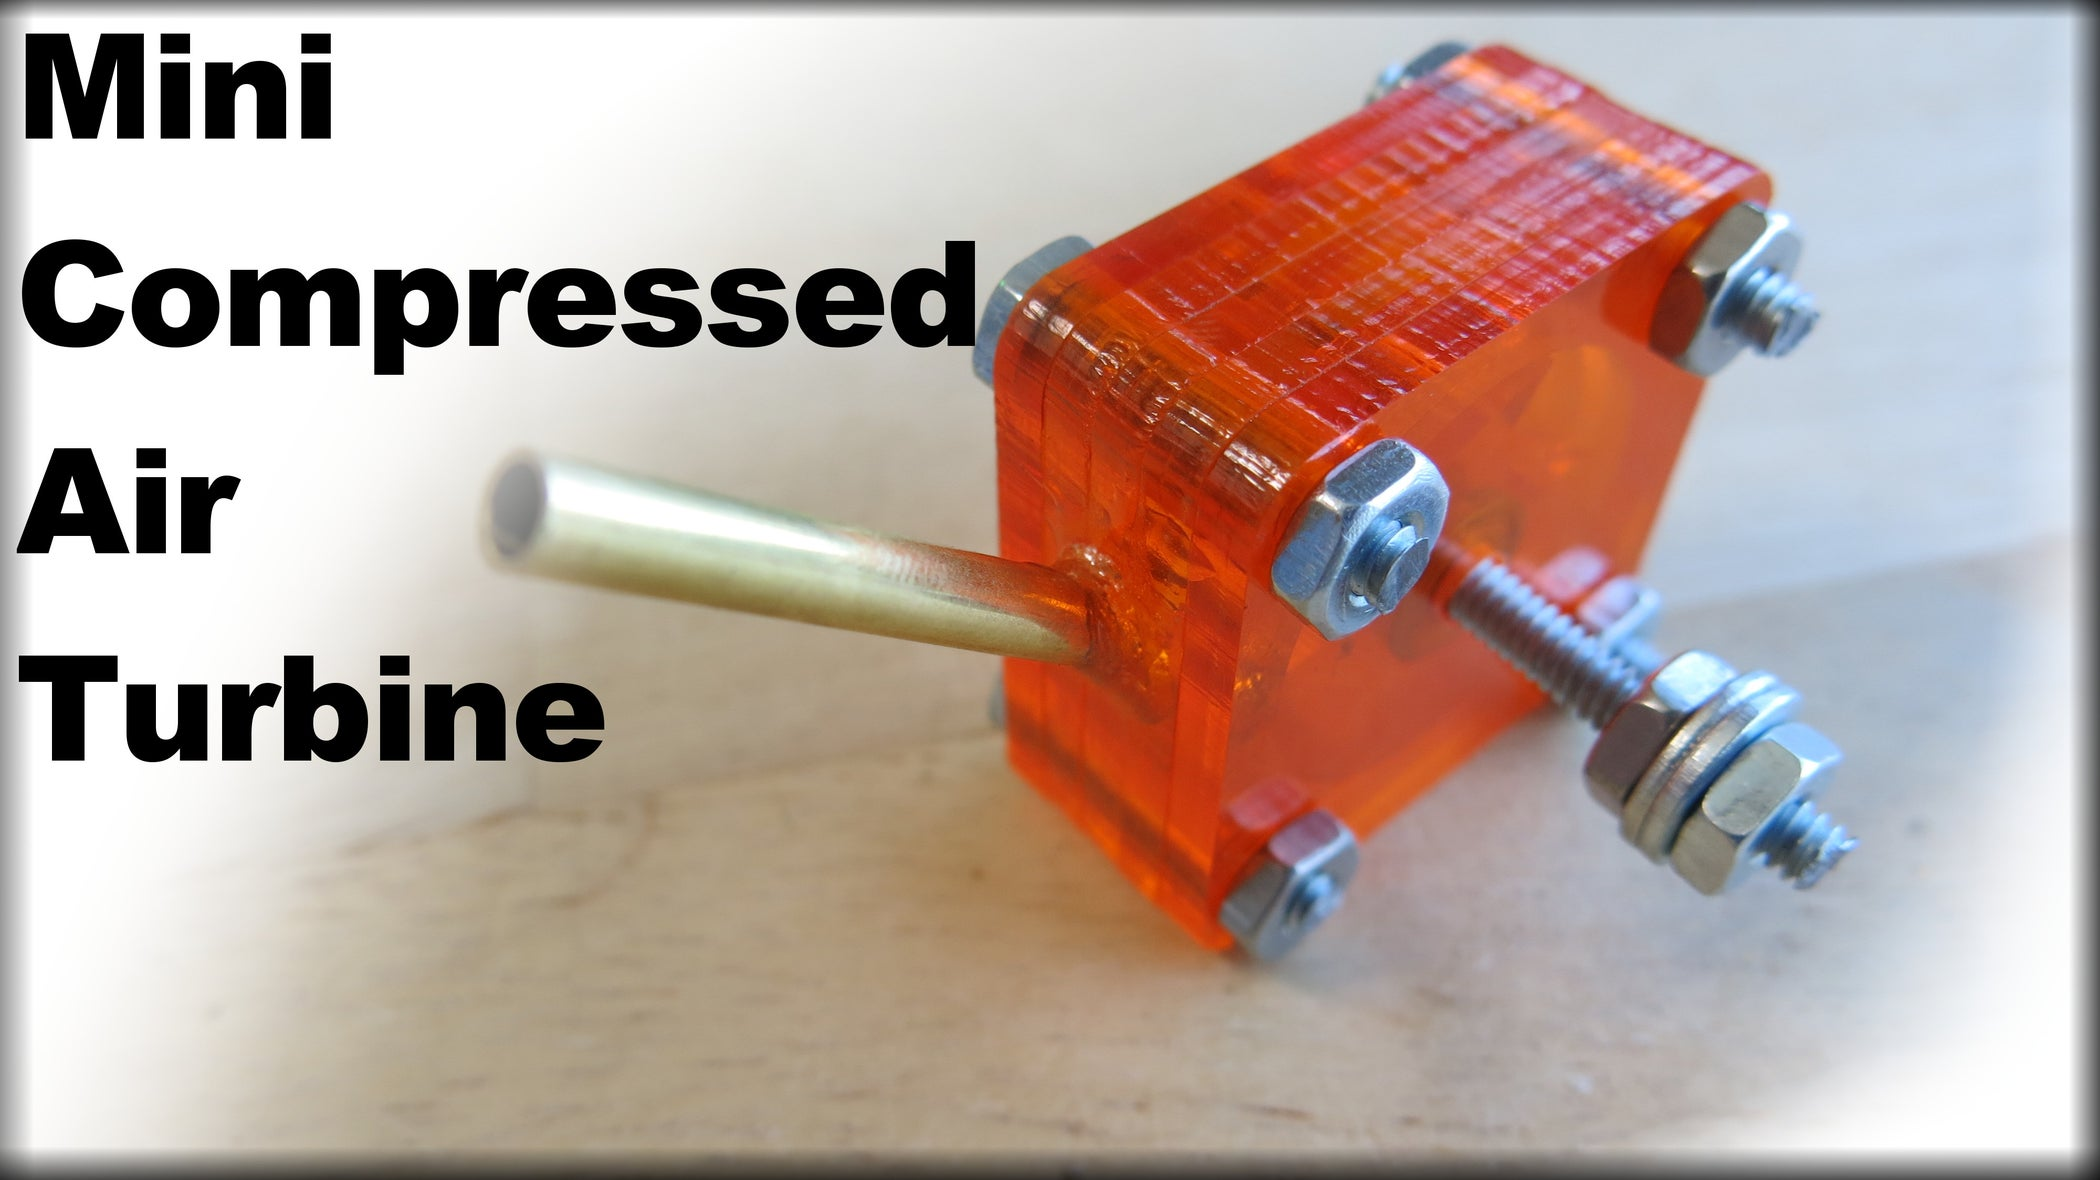 How To Make A Mini Compressed Air Turbine 7 Steps With